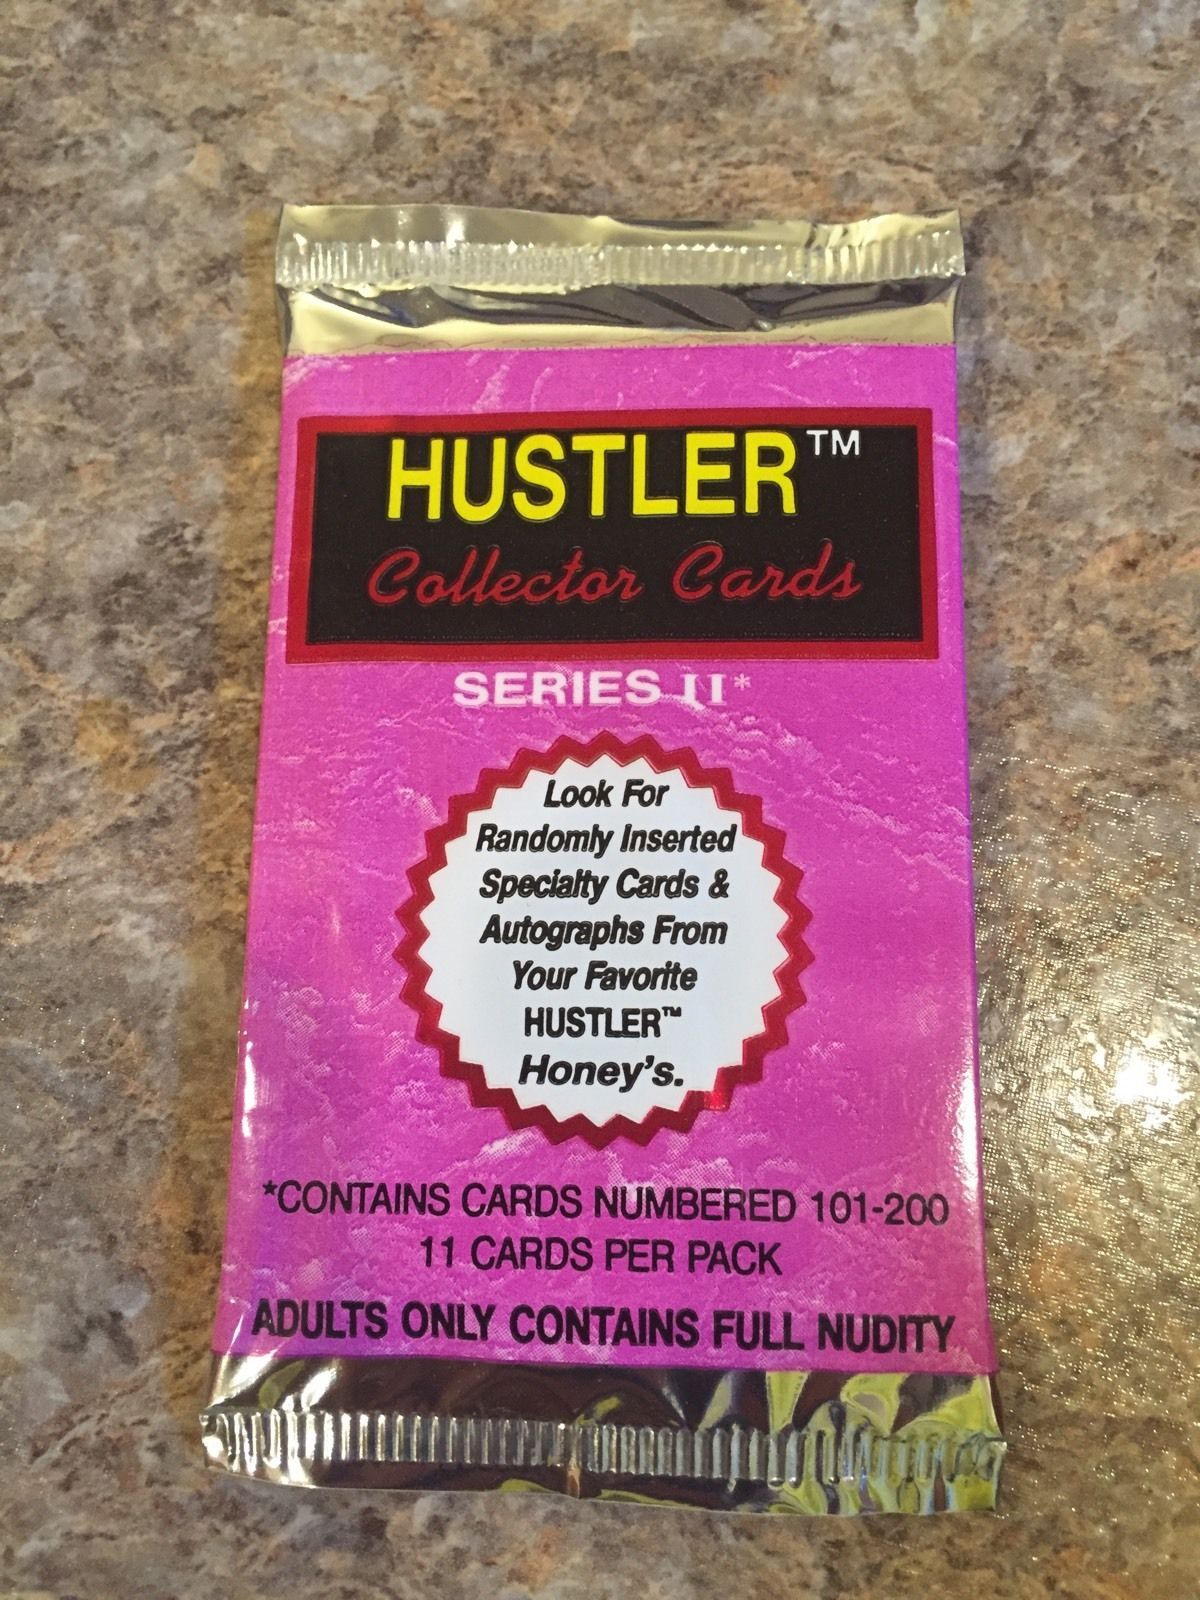 1993 Hustler Collectors Cards Series II. Total 5 Packs Of 11 Cards Each Lot